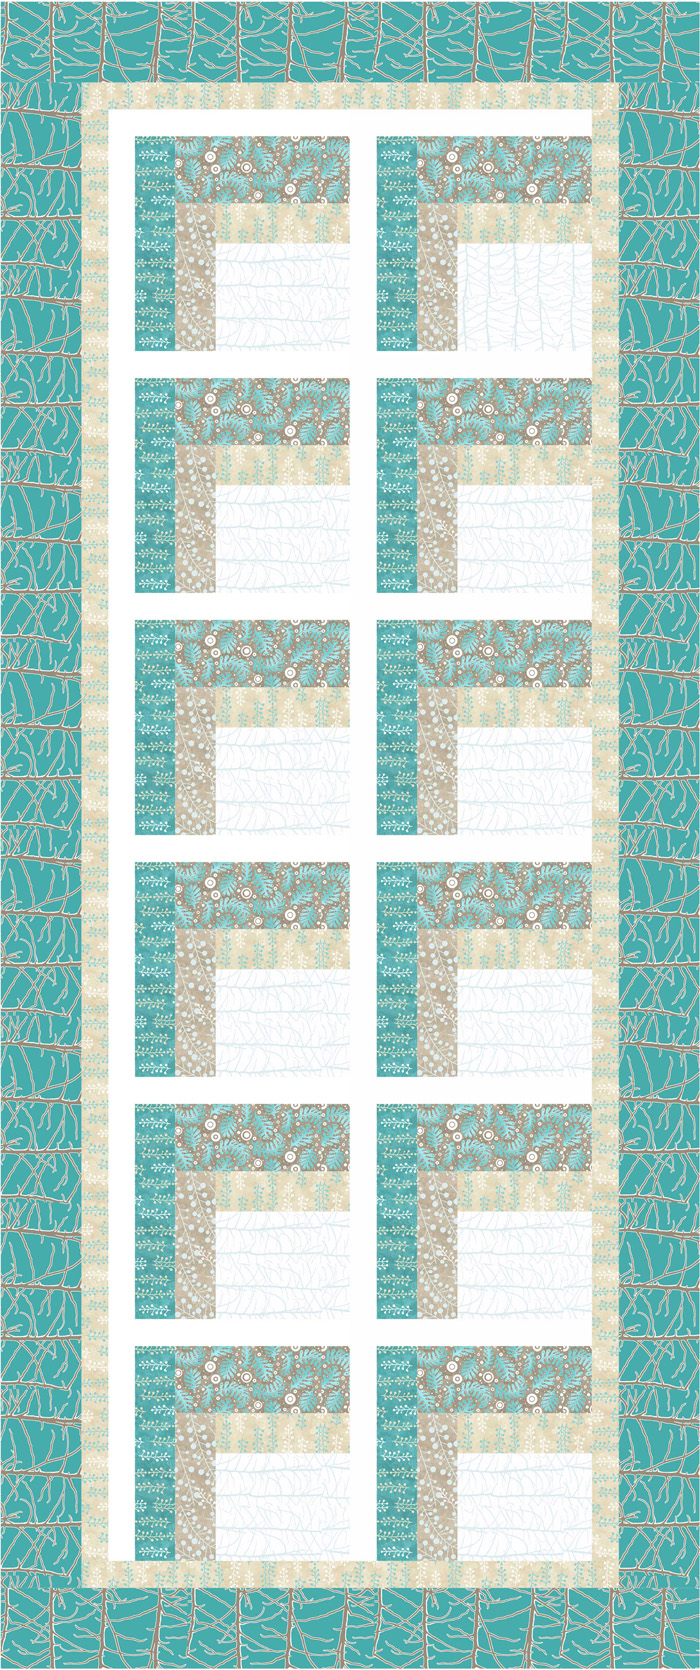 Modern two sided log cabin quilt pattern sew 150 advanced for Modern house quilt pattern